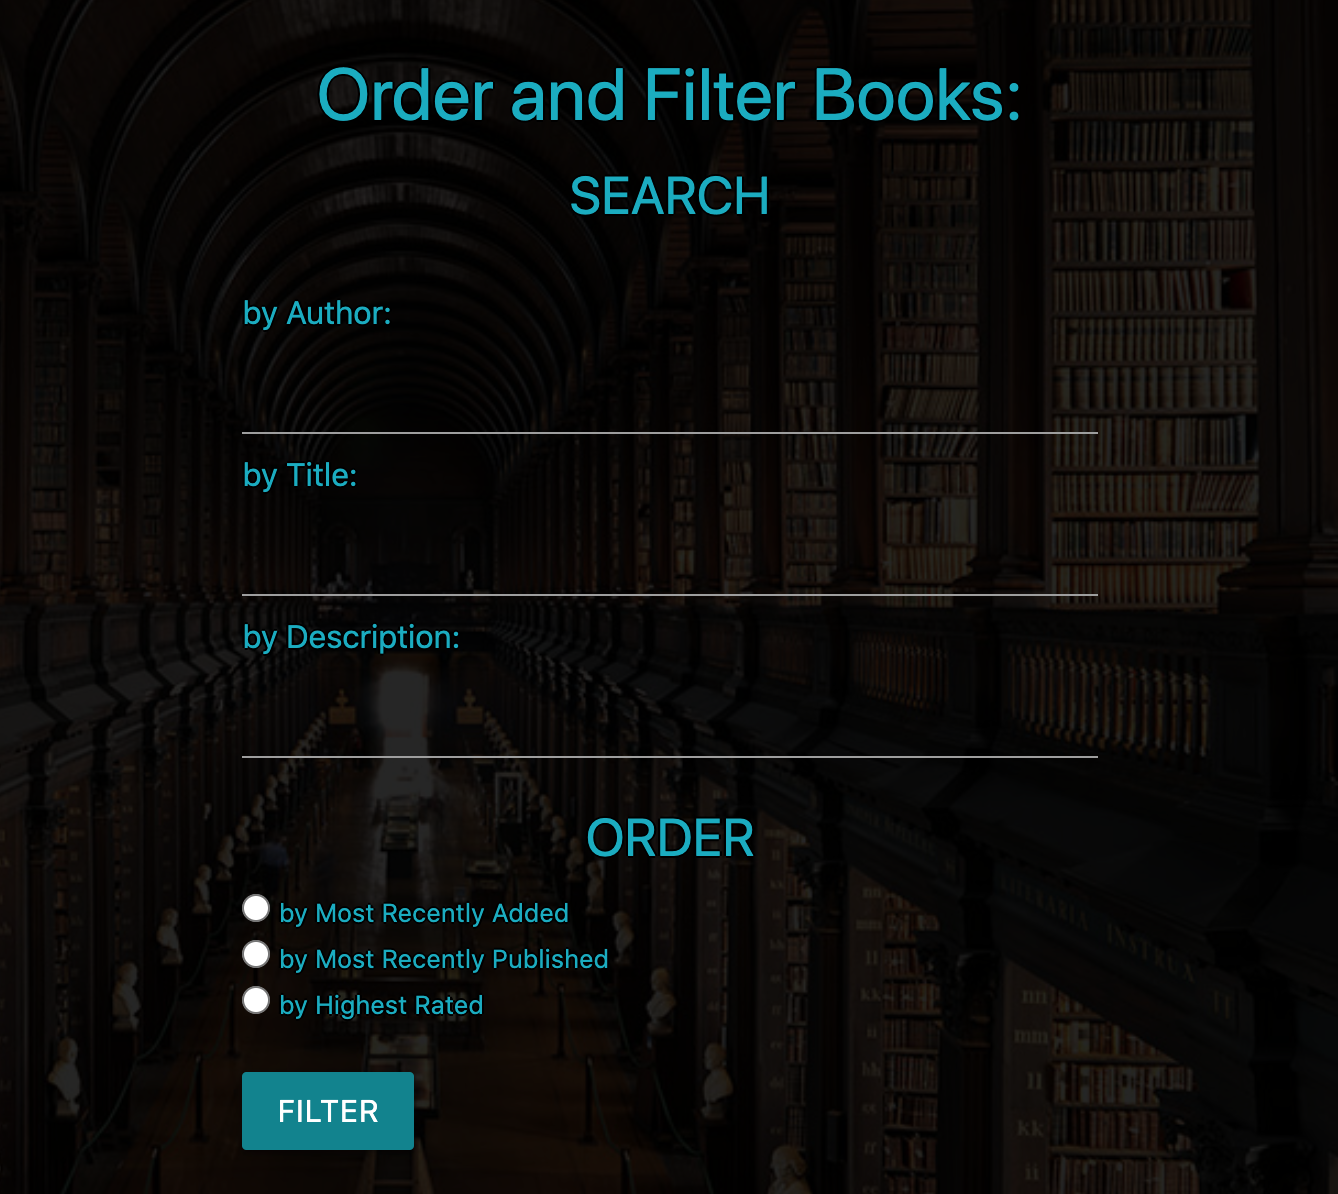 Library Books Search and Order Filters Form: Search author, title, description; Order by Most Recently Added, Most Recently Published, Highest Rated